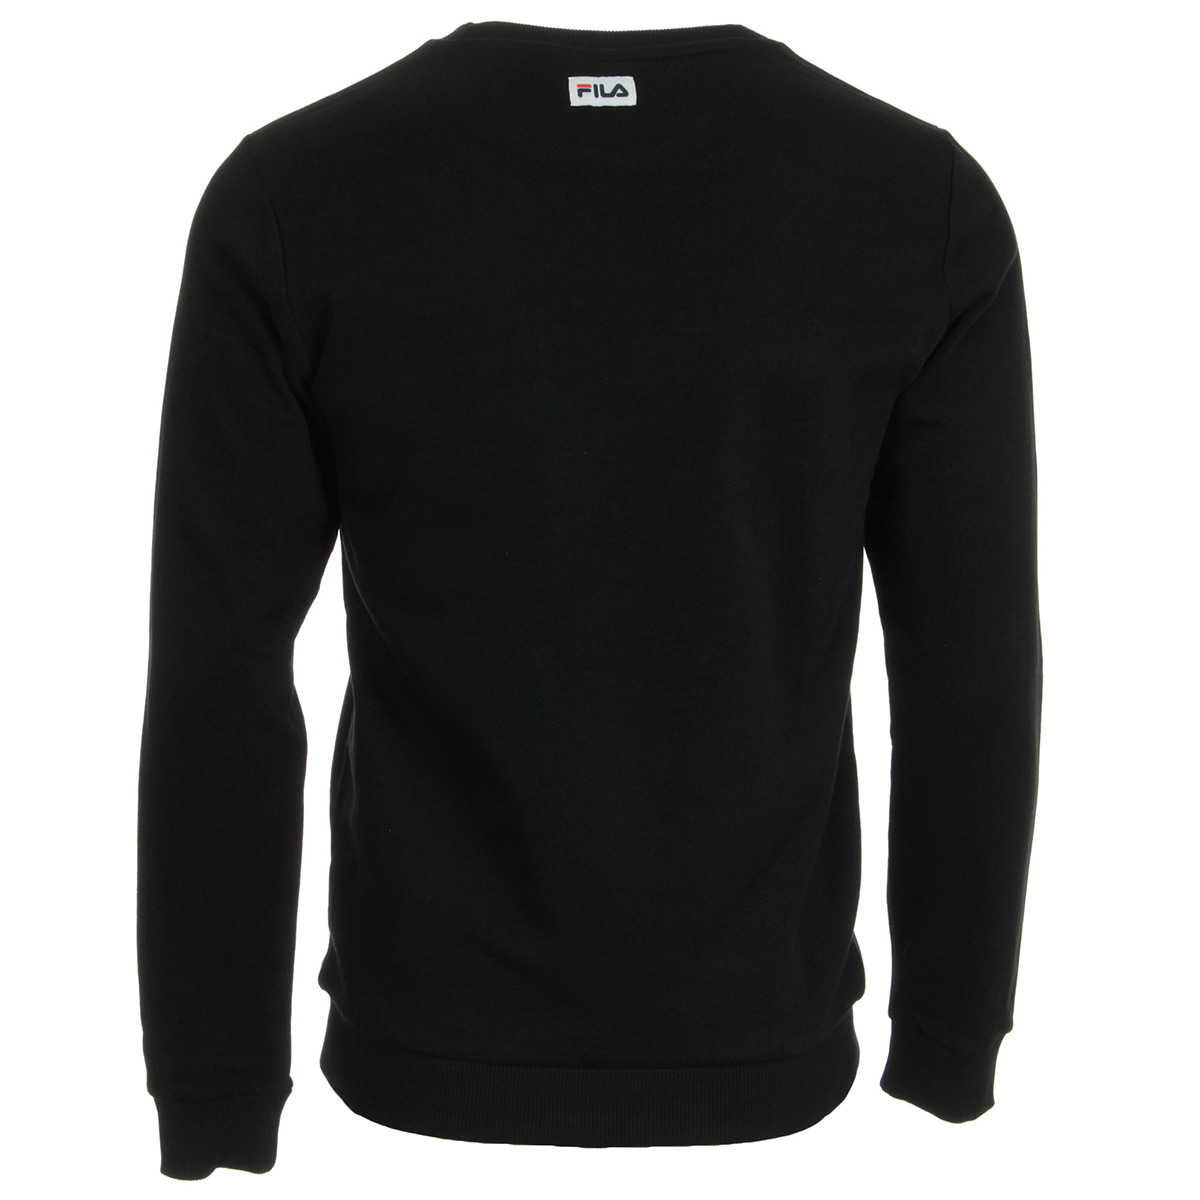 Fila Rian Crew Sweat 682163002, Sweats